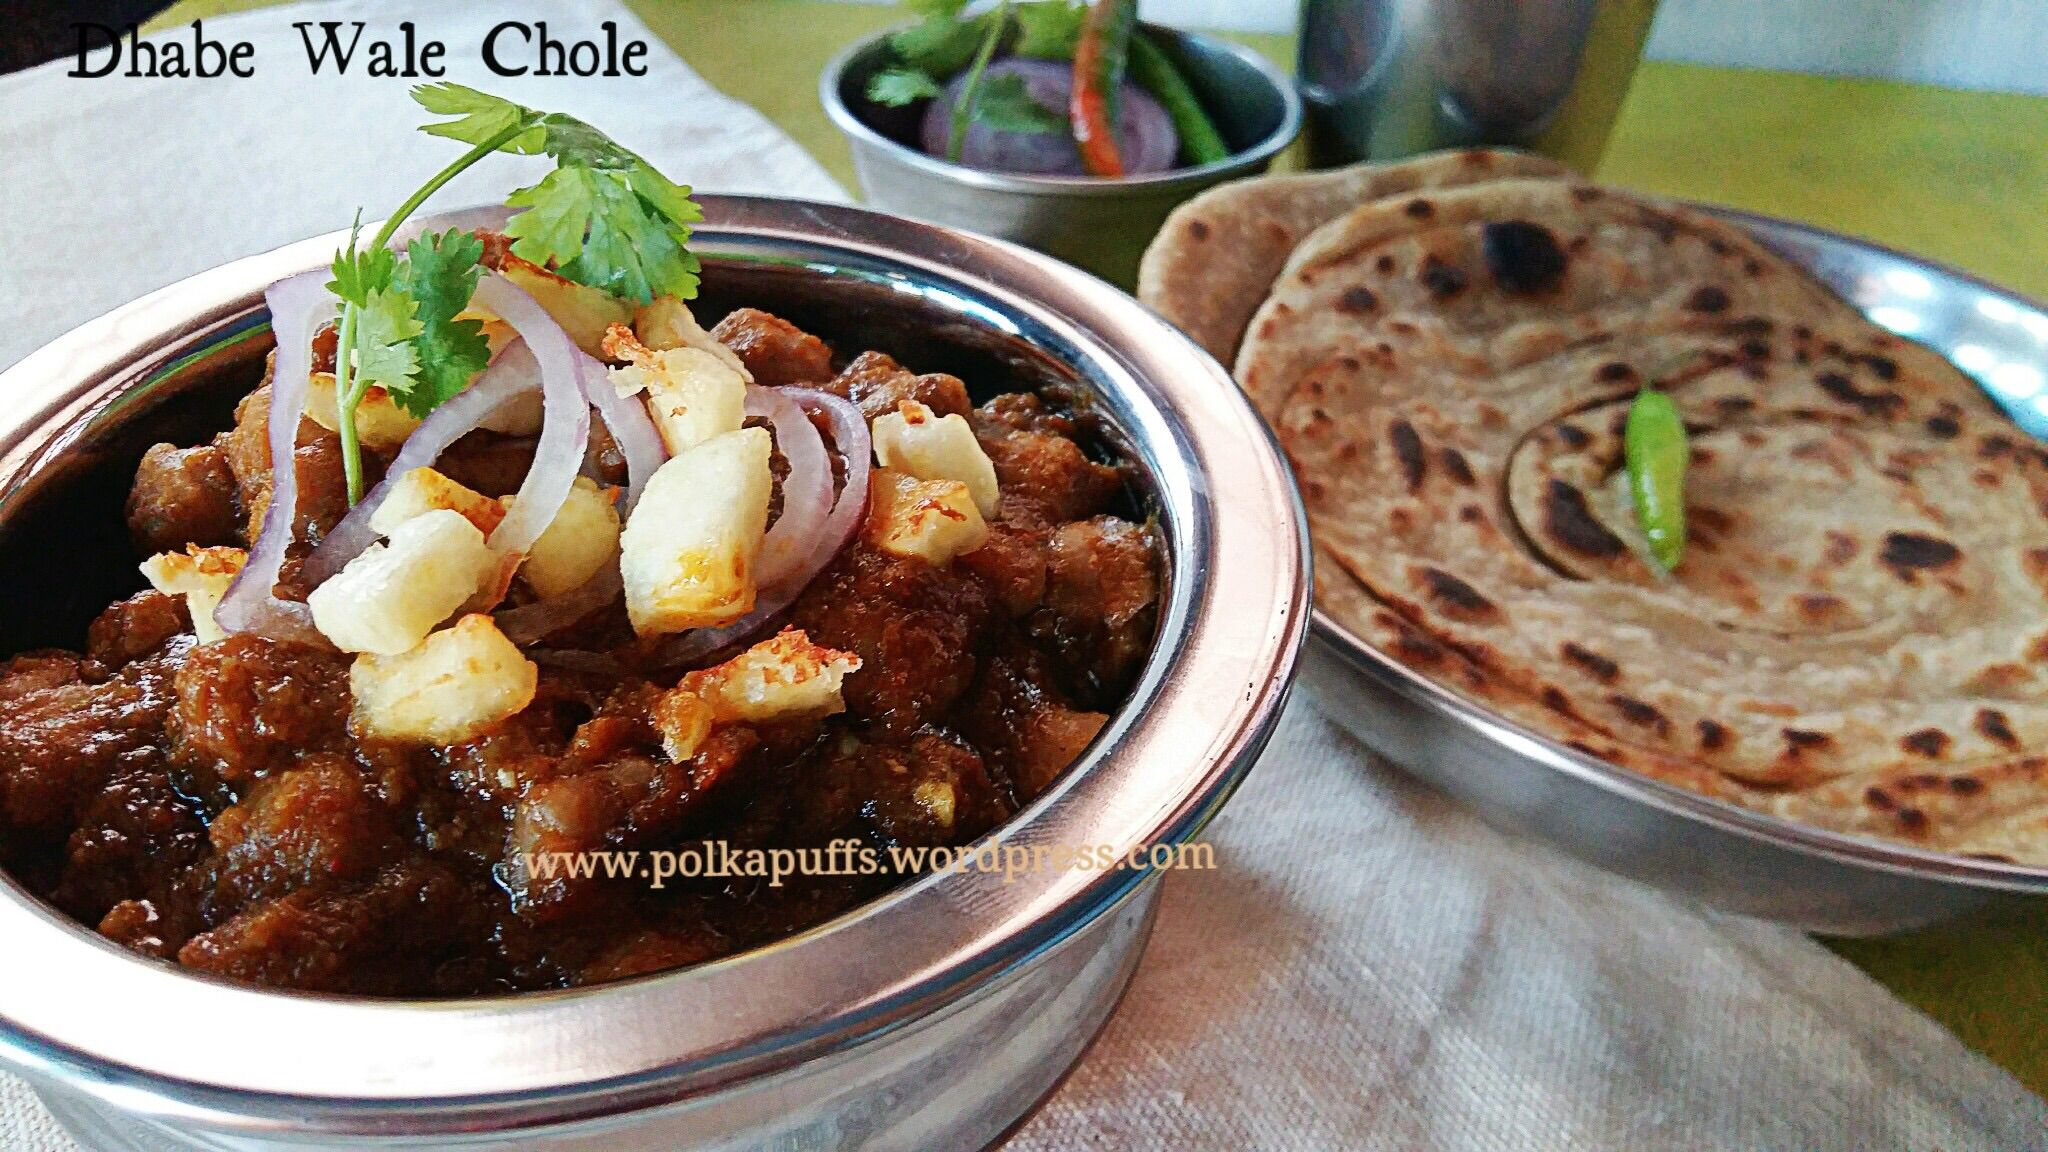 Dhabe wale chole chickpeas in a spicy indian curry chana masala dhabe wale chole chickpeas in a spicy indian curry chana masala recipe forumfinder Image collections